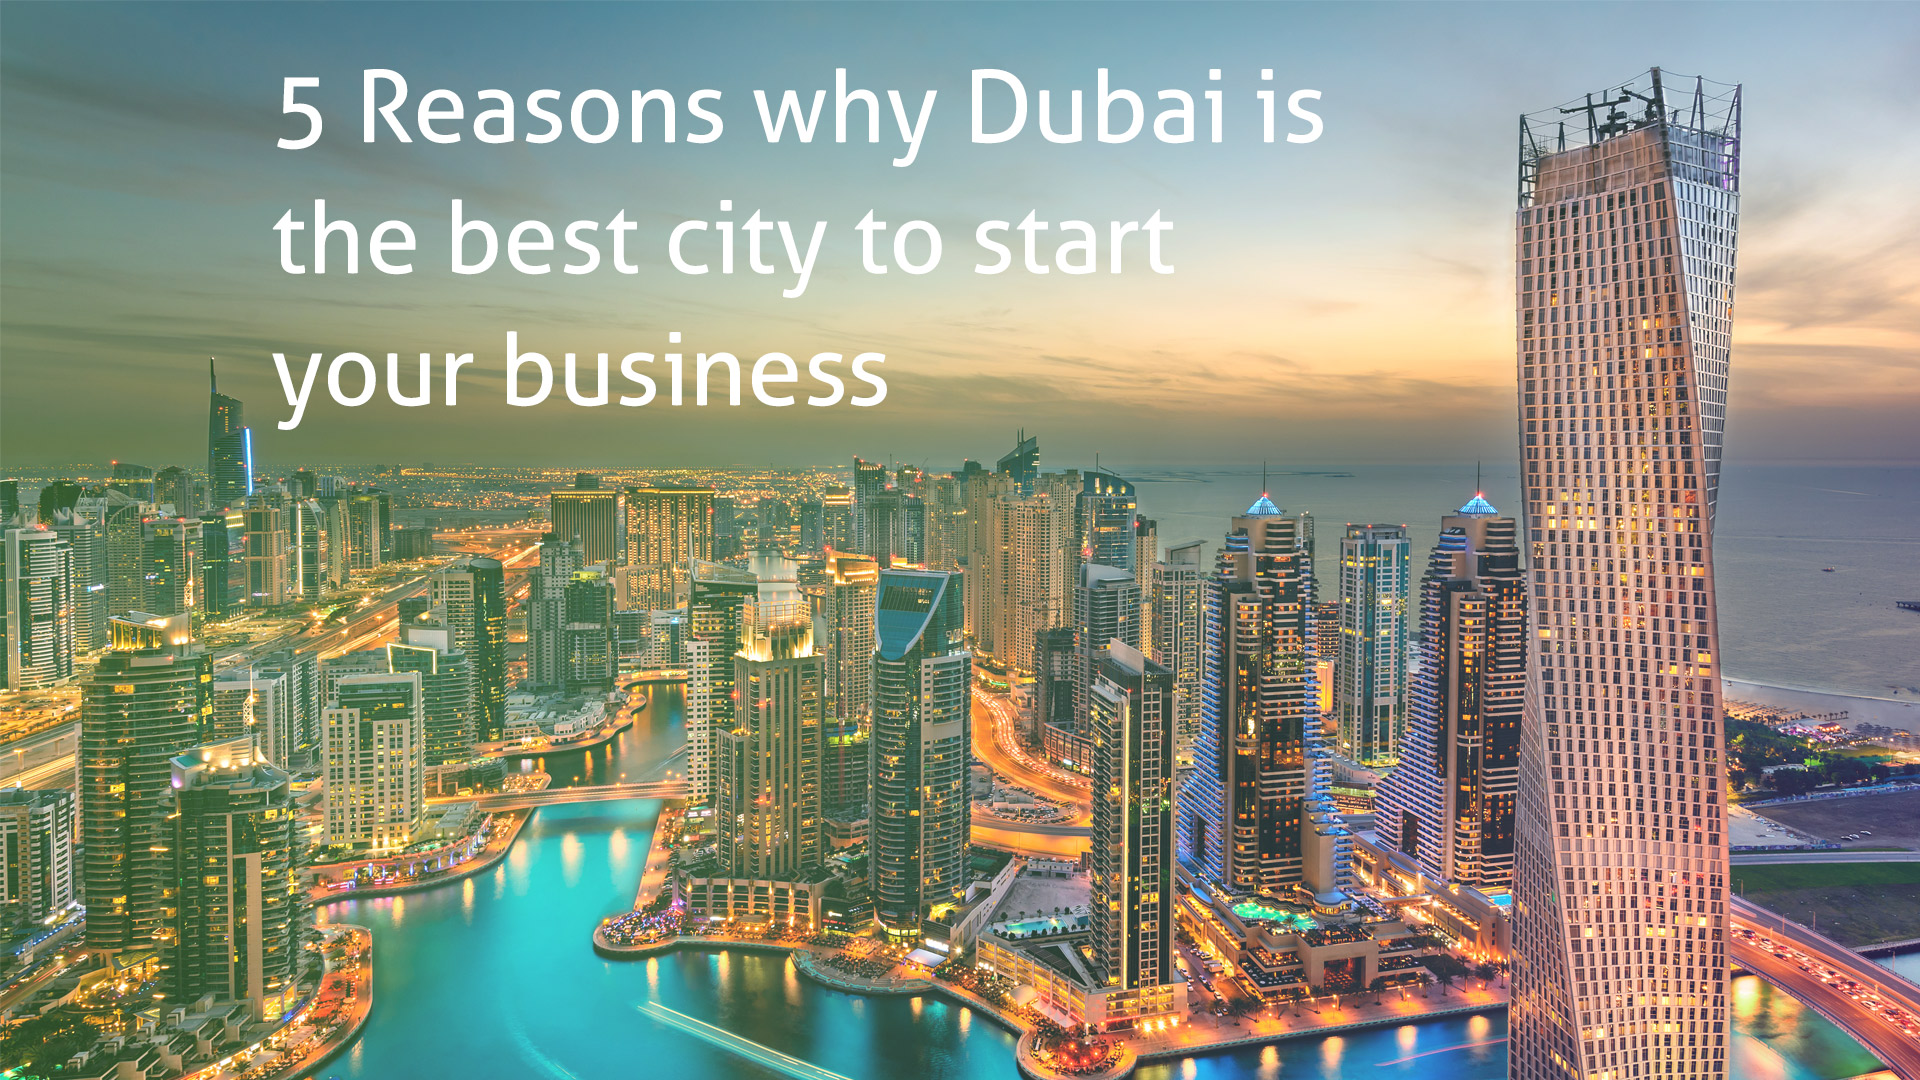 5 Reasons why Dubai is the best city to start your business